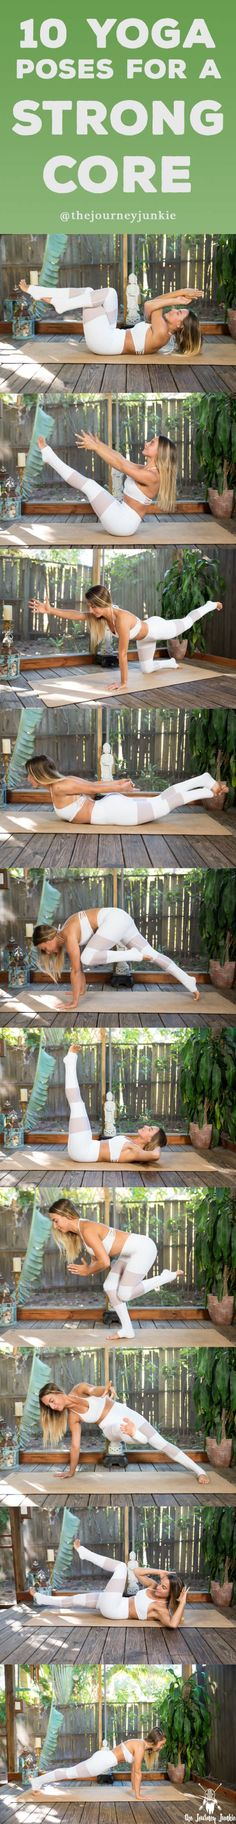 10 Poses for a Strong